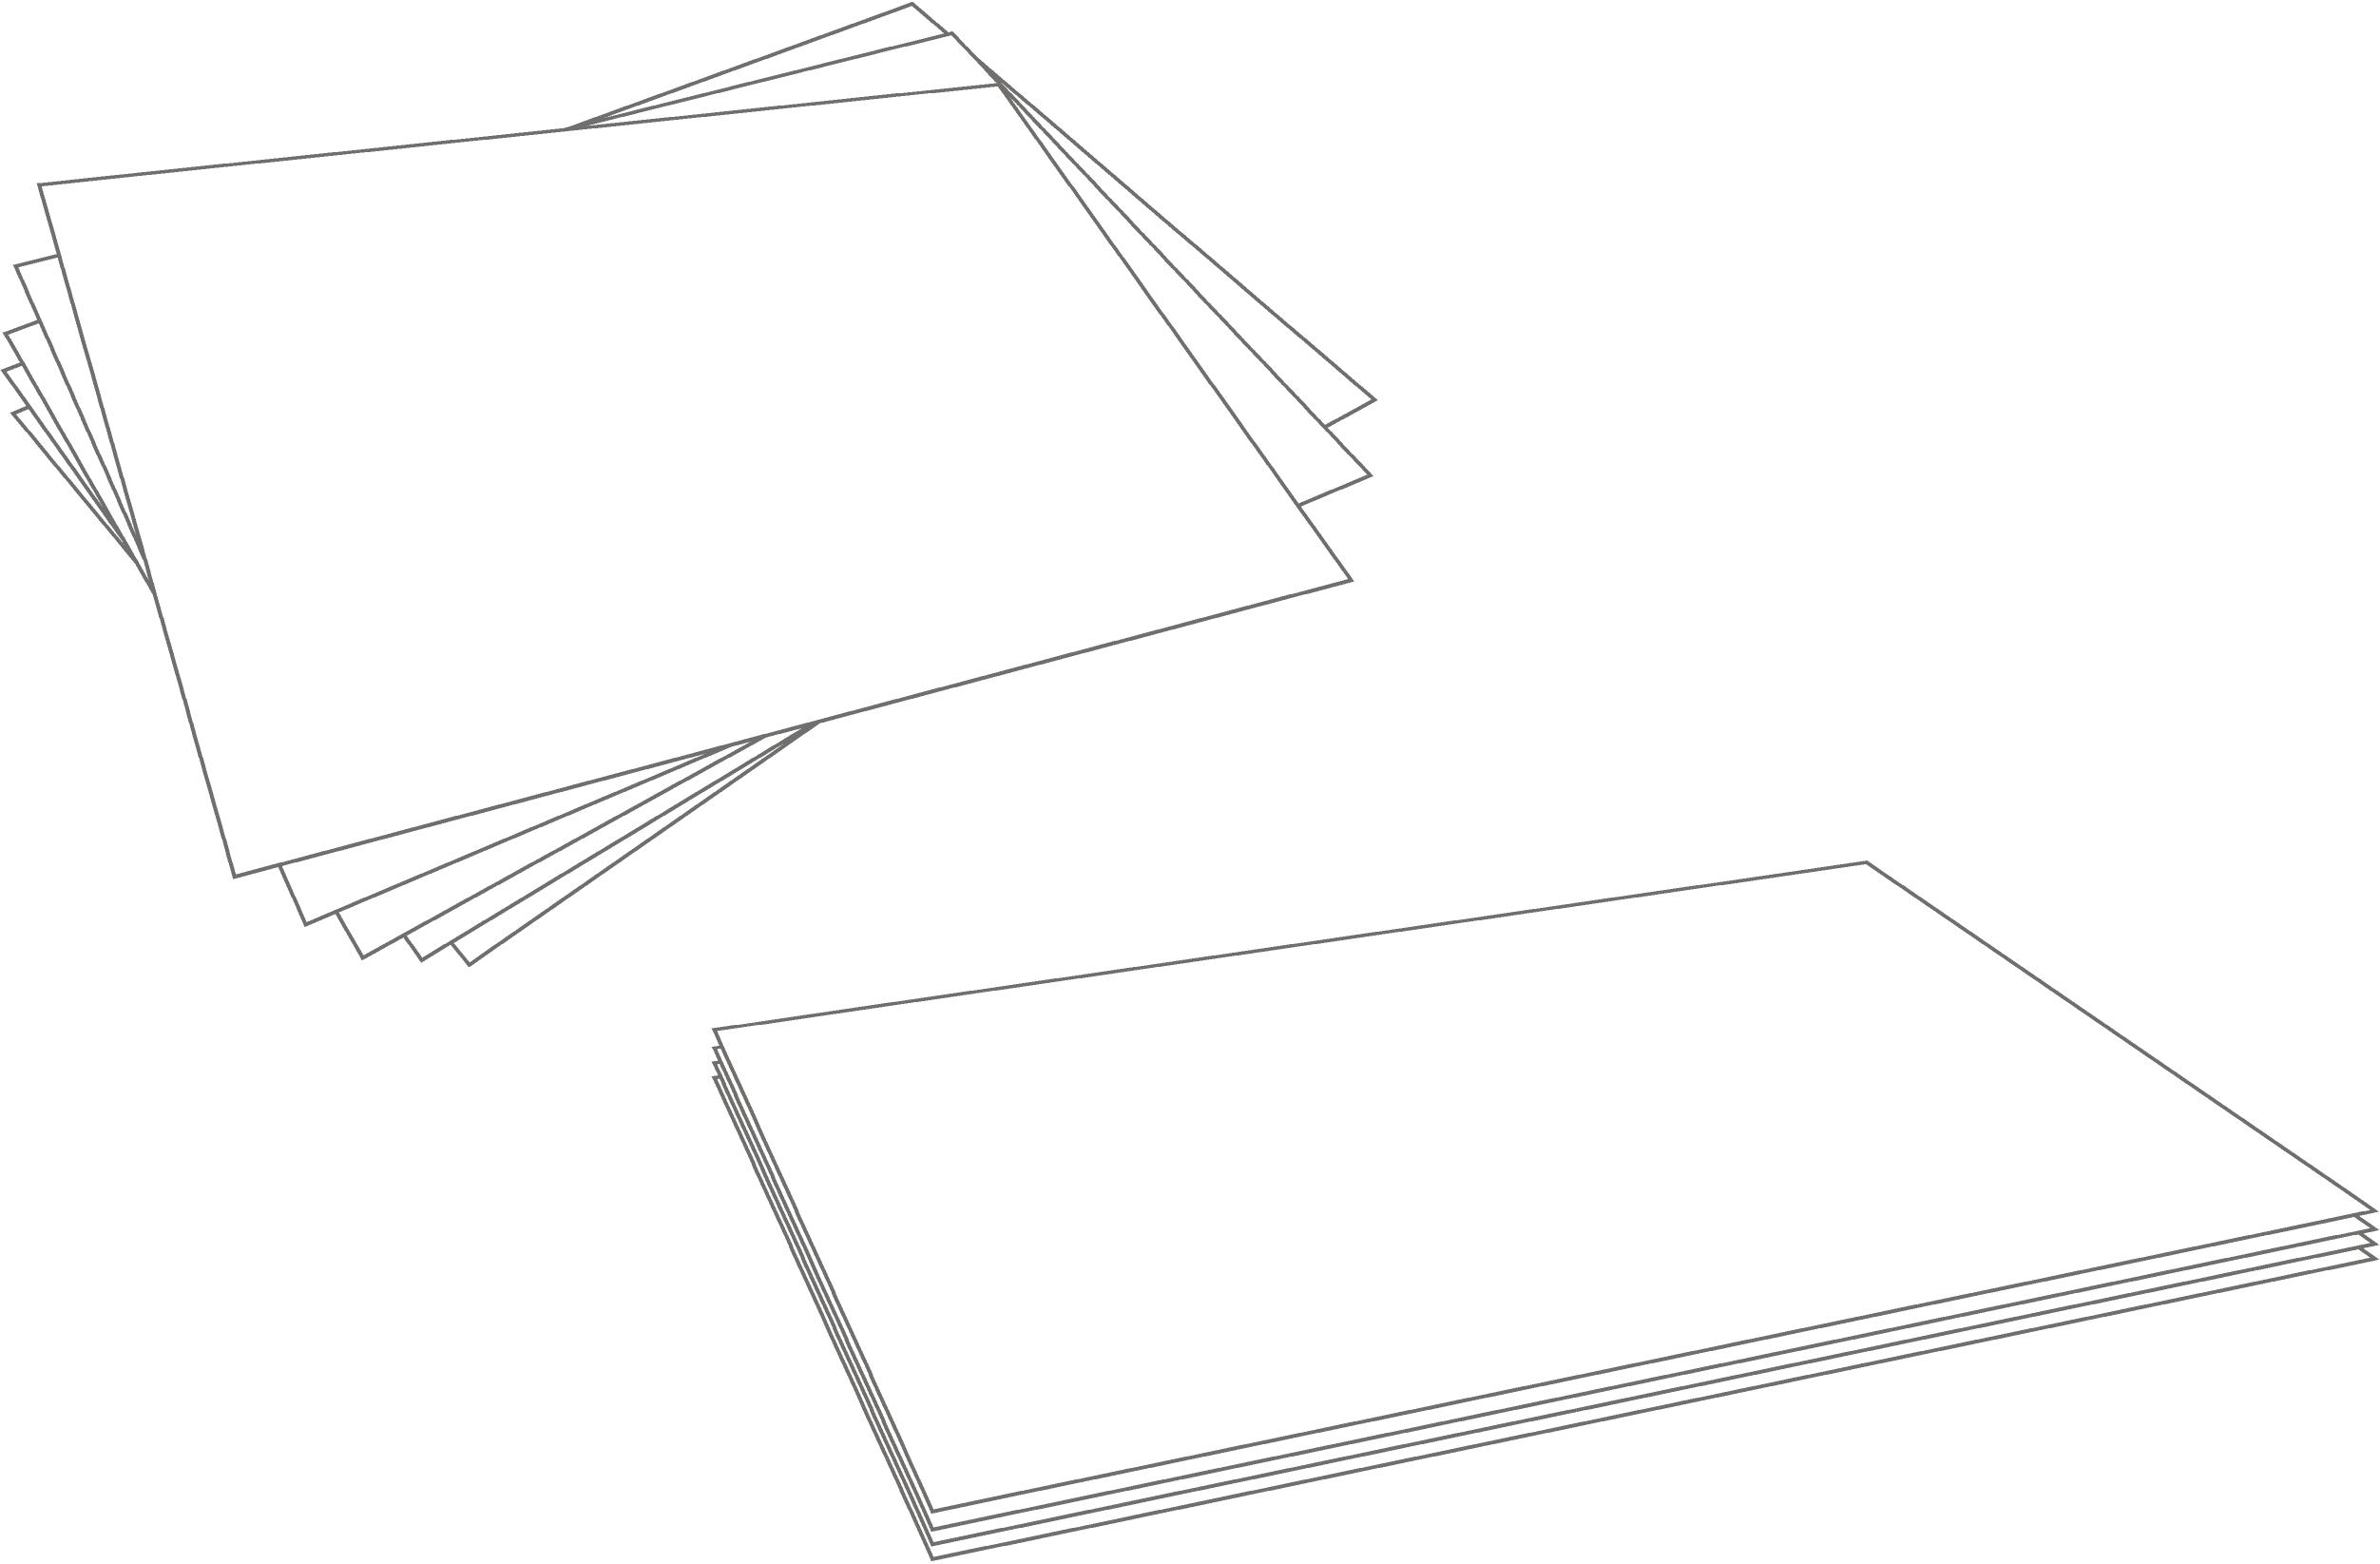 Picture of Stack Your Paper Neatly in (at Least 4) Piles of 8 Sheets